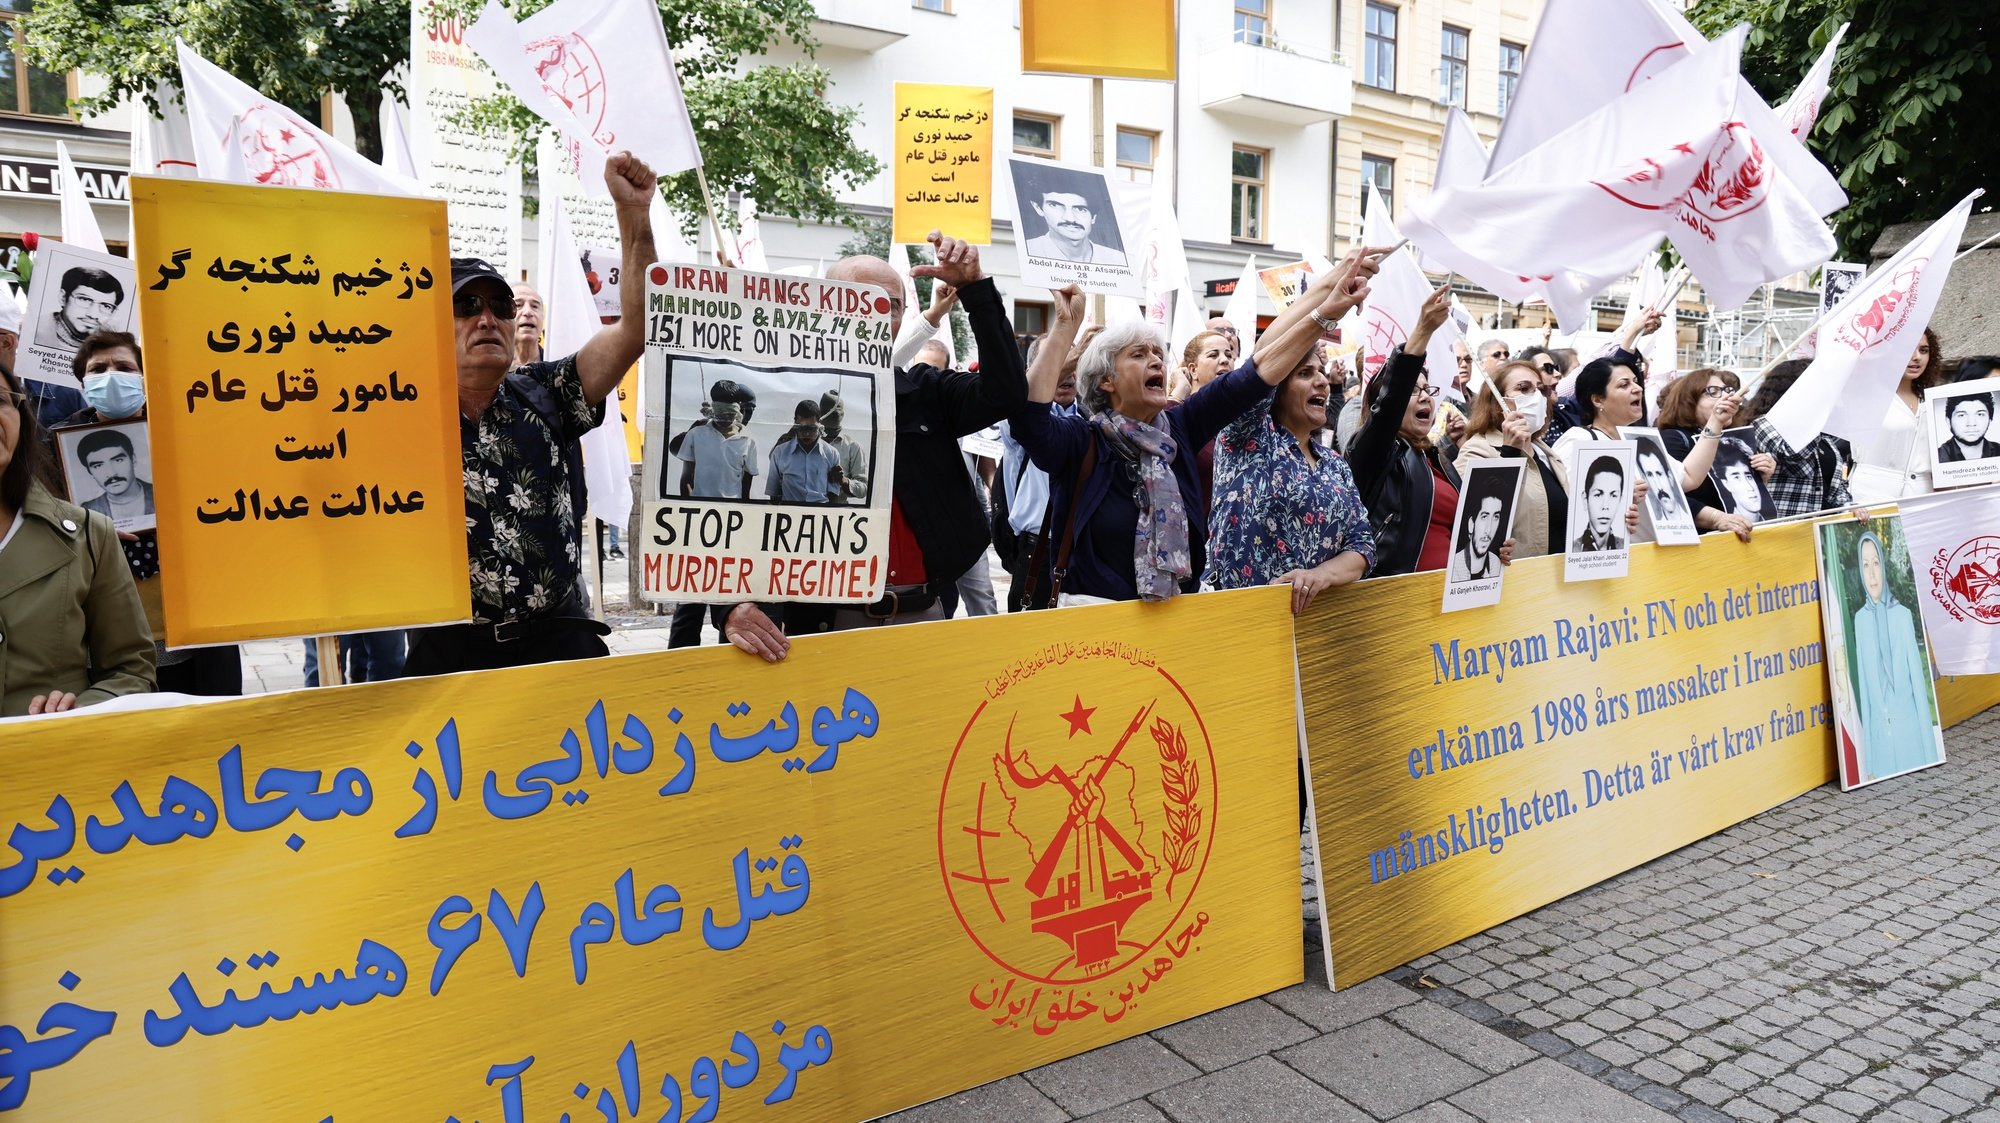 epa09407908 Supporters of the People's Mojahedin Organization of Iran protestoutside Stockholm distric court as the trial of Hamid Noury starts in Stockholm, Sweden, 10 August 2021. This is the first day of the trial of Hamid Noury who is accused of involvement in the massacre of political prisoners in Iran in 1988.  EPA/STEFAN JERREVANG SWEDEN OUT